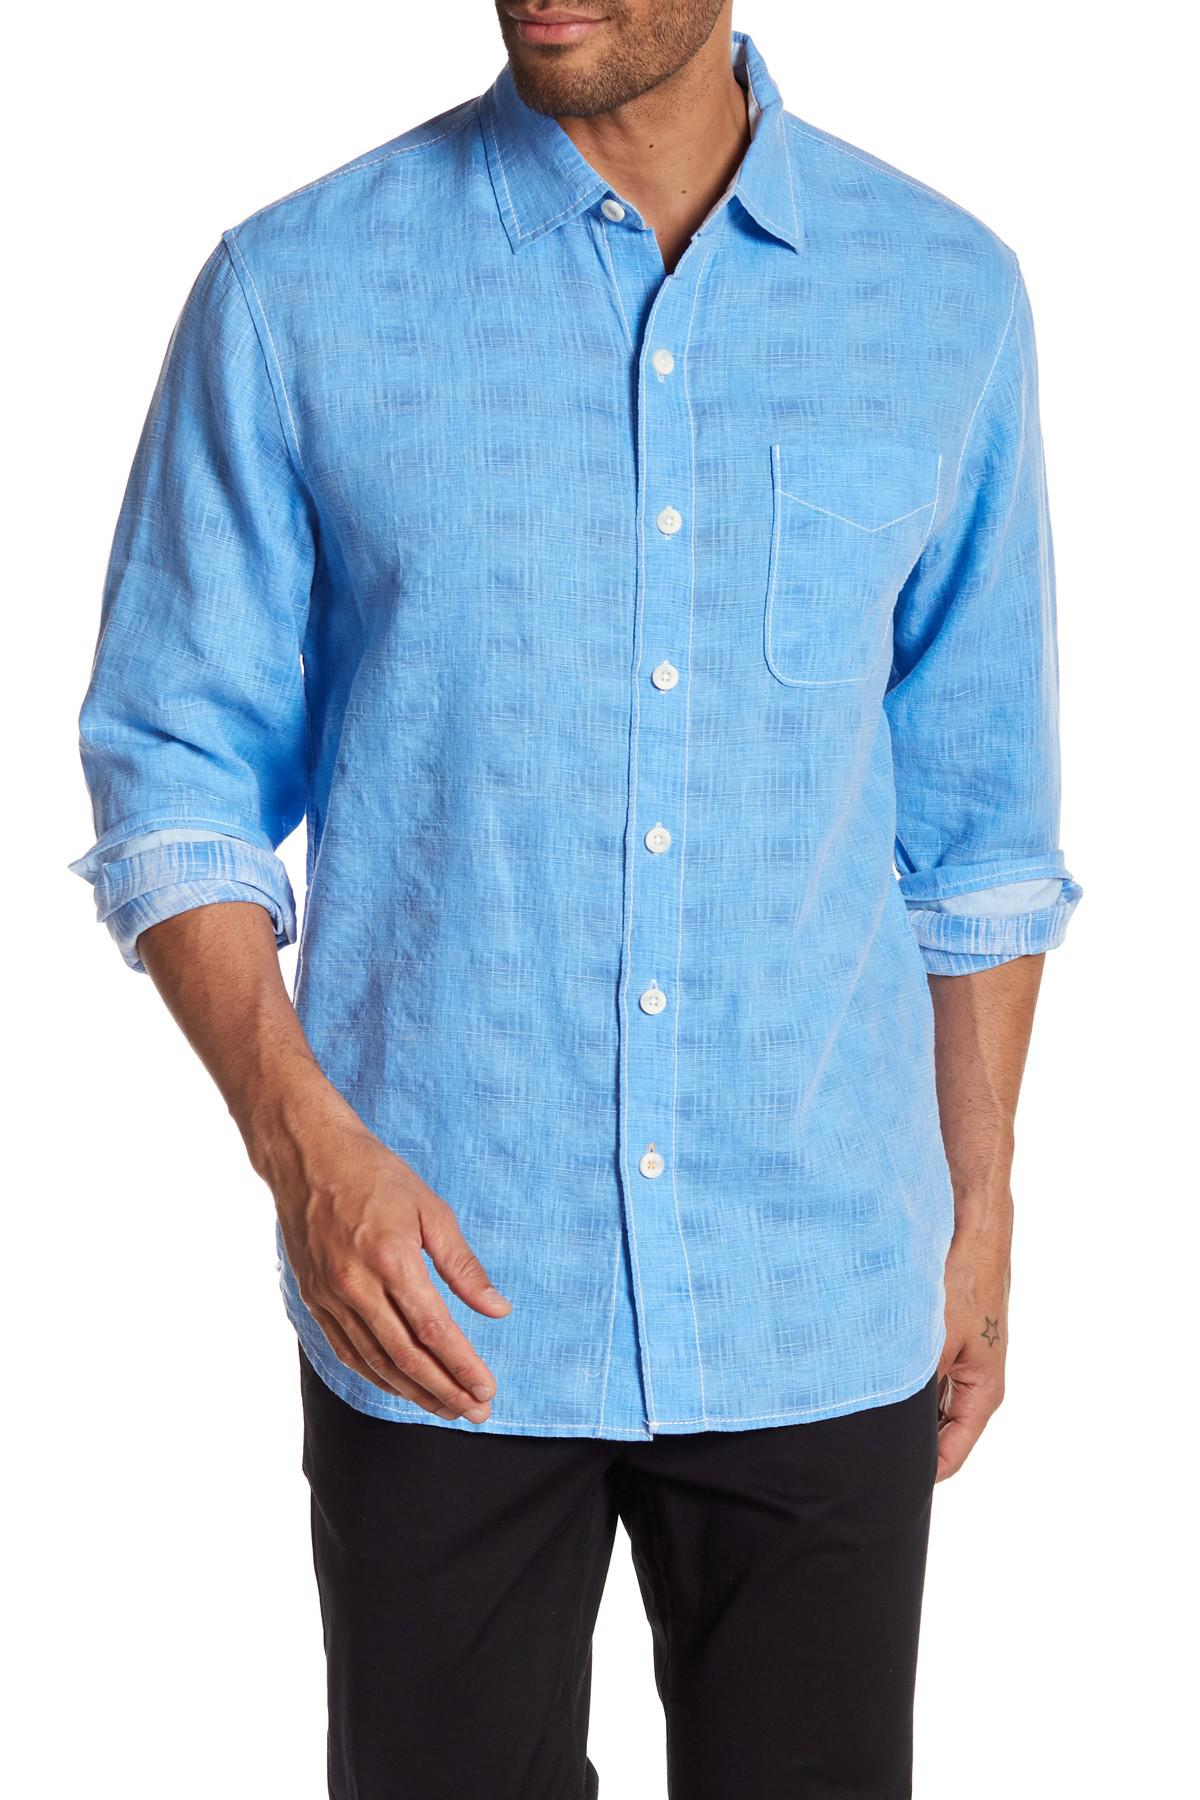 Tommy bahama long sleeve button up shirt in blue for men for Tommy bahama long sleeve dress shirts